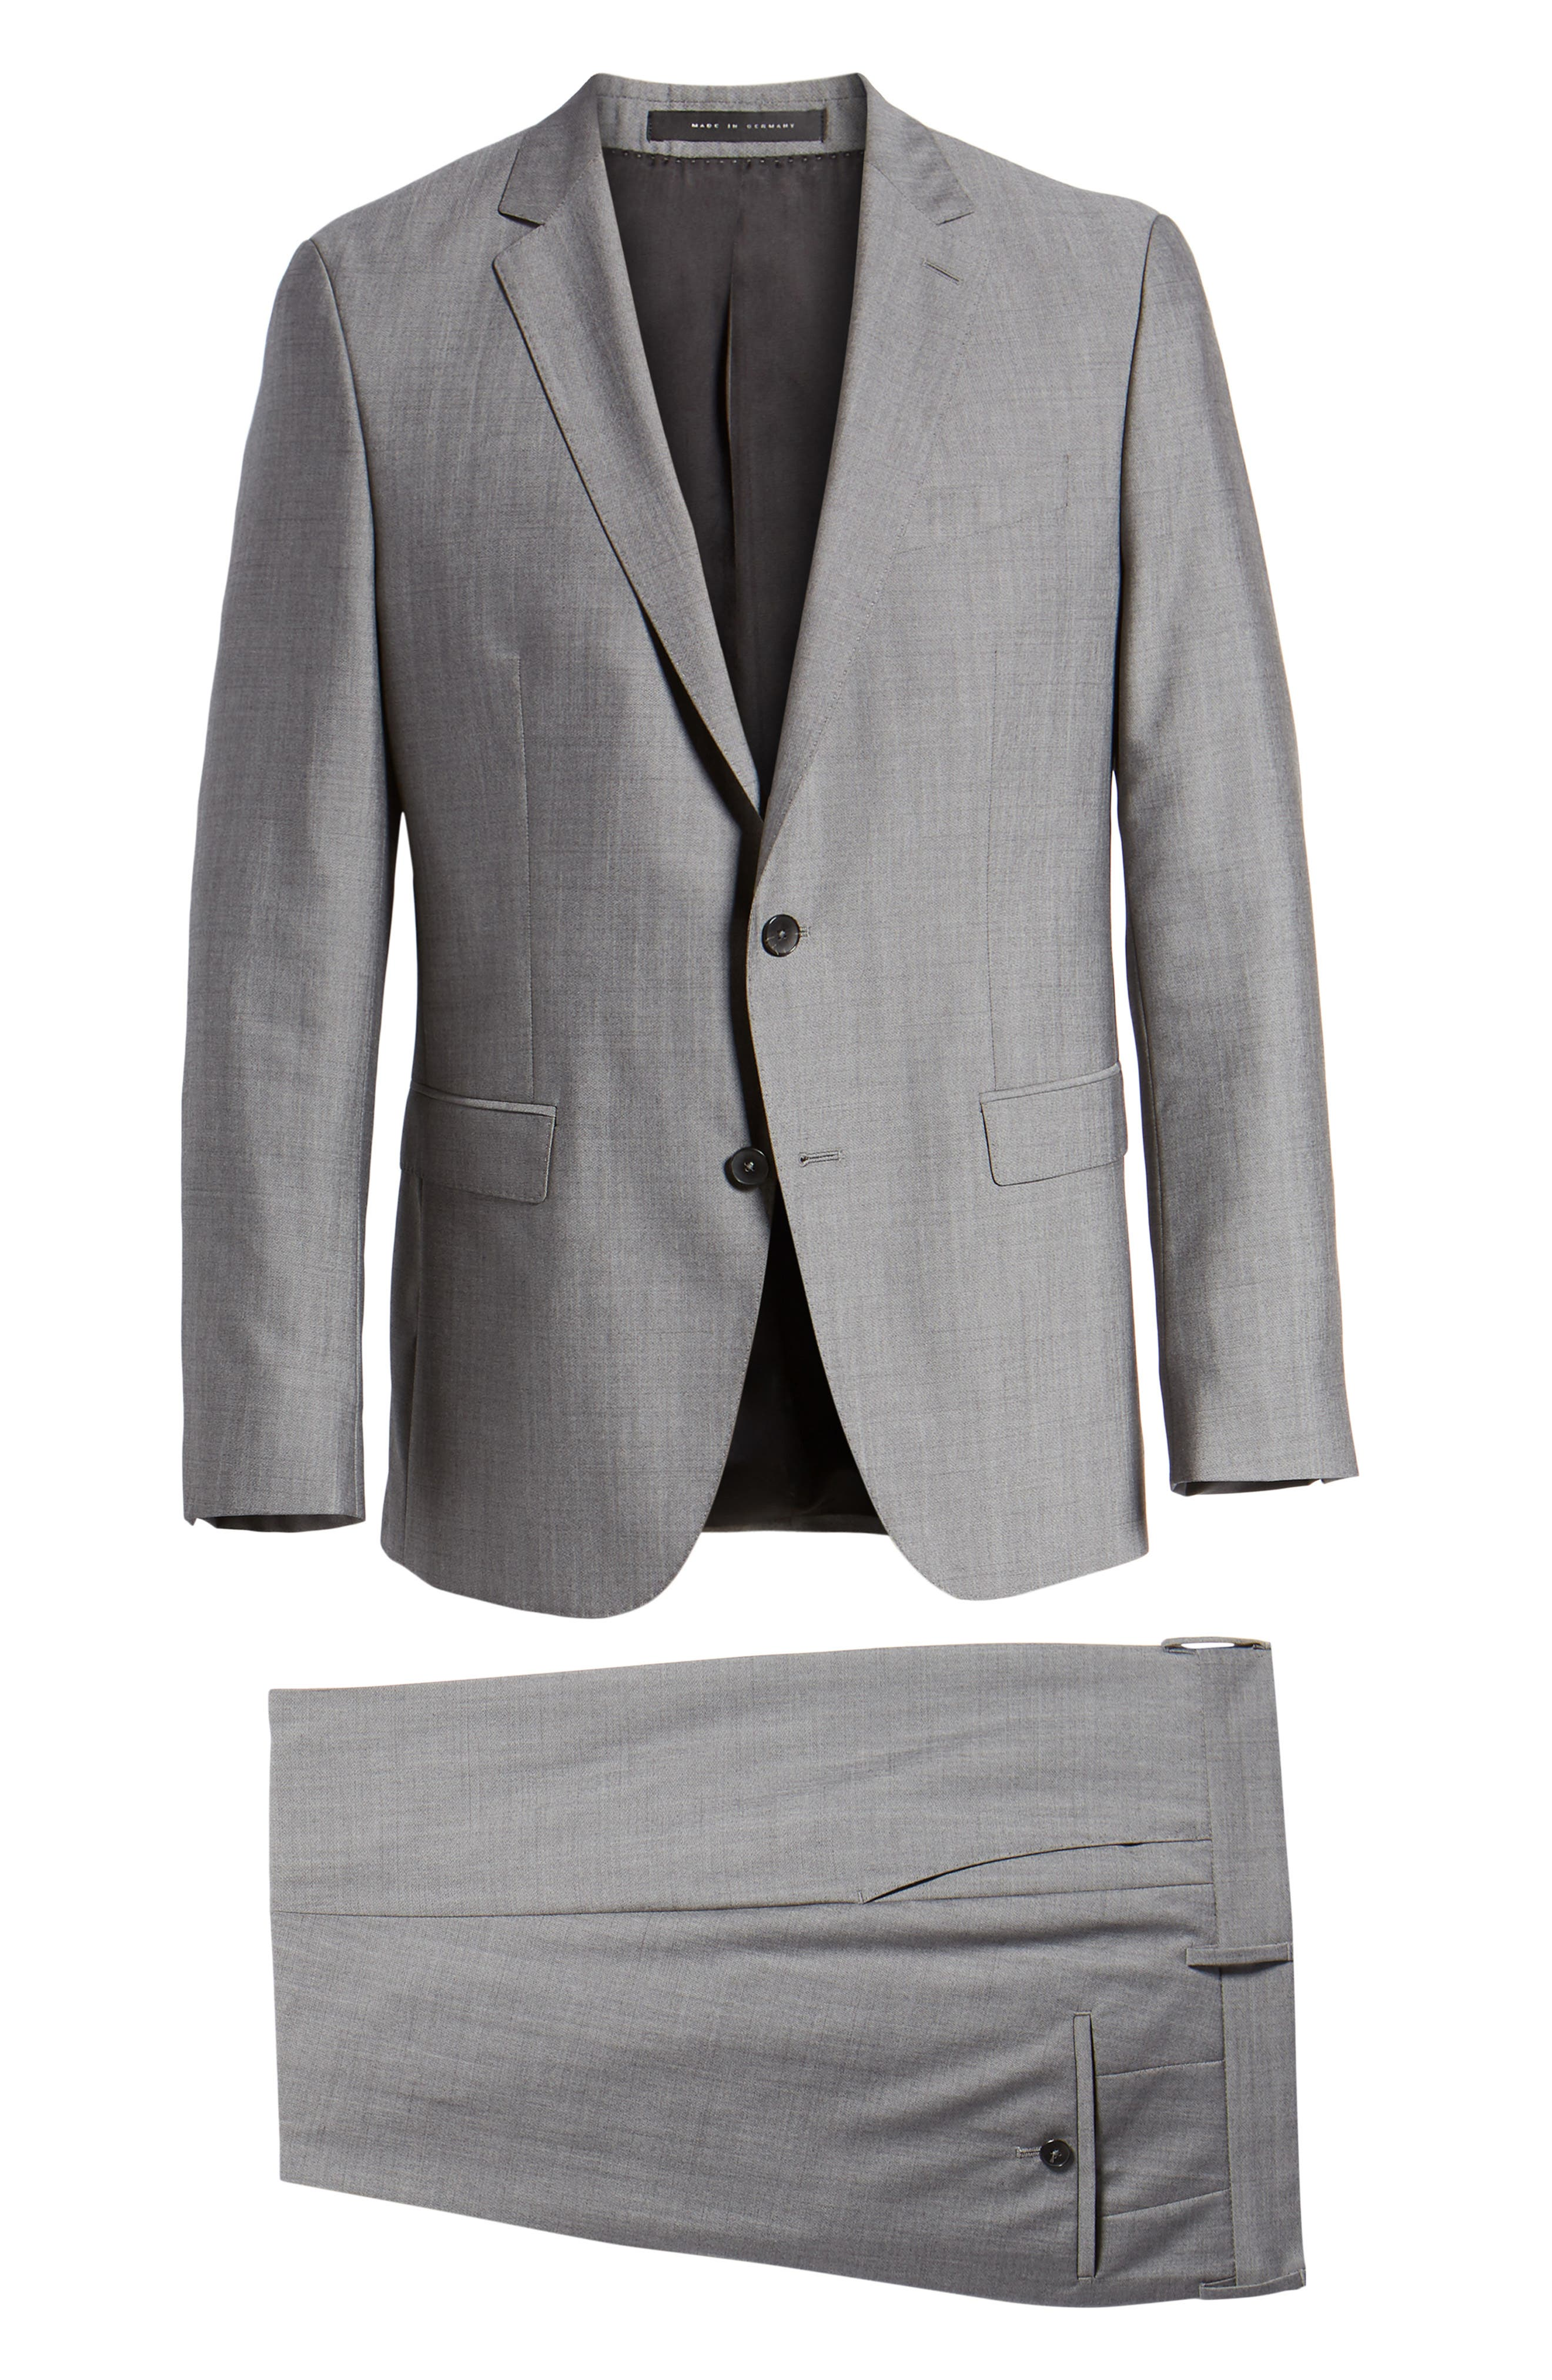 Novan/Ben Trim Fit Solid Wool Suit,                             Alternate thumbnail 8, color,                             069